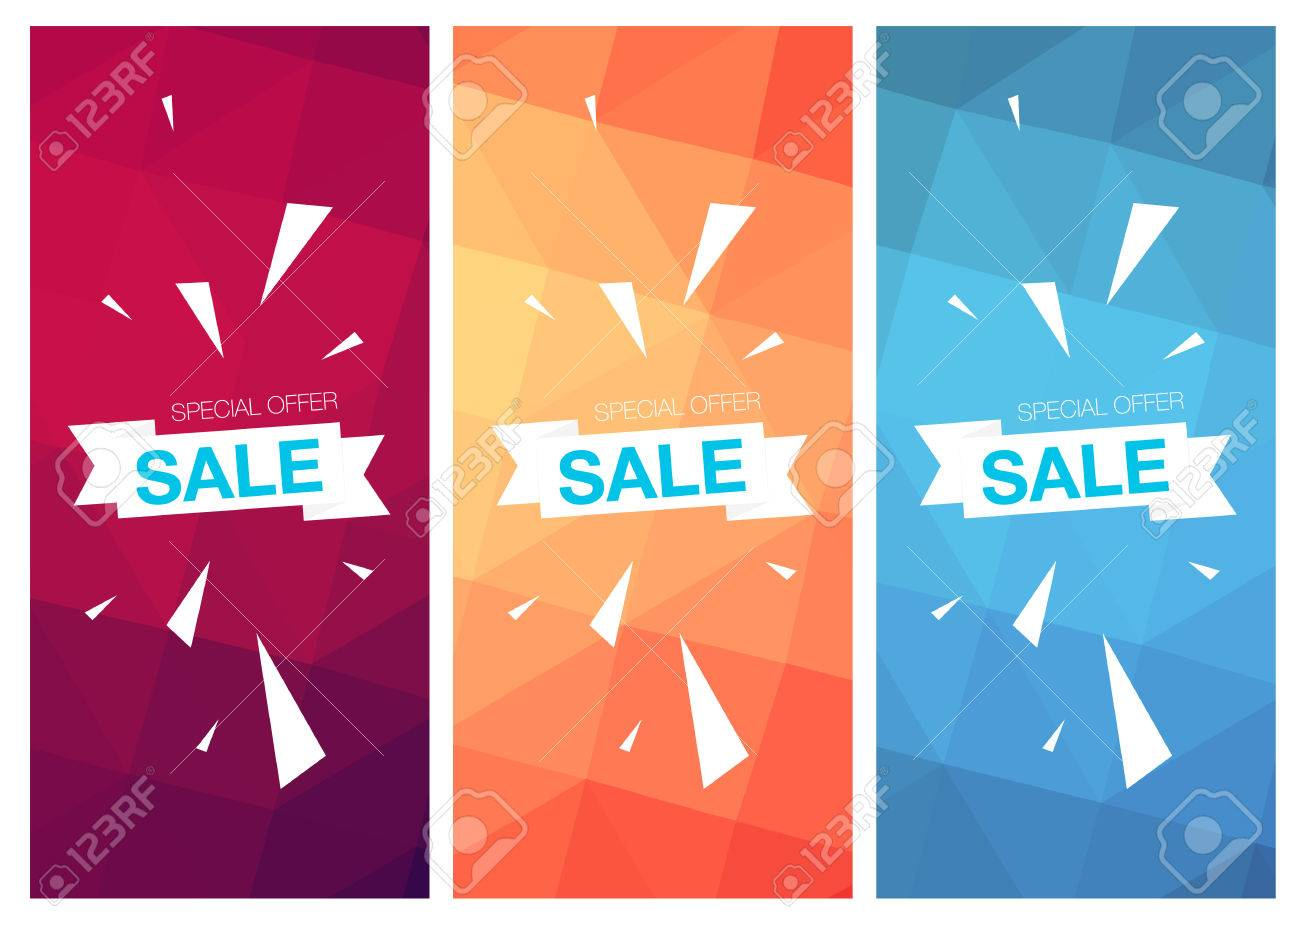 Super Sale Special Offer Web Banner Templates On Colored ...